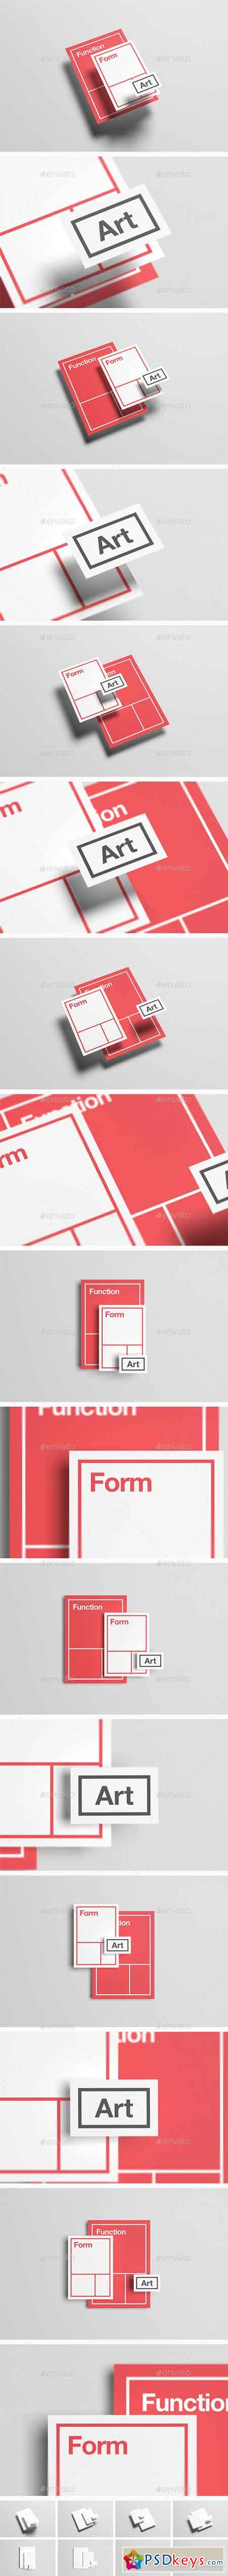 Floating Stationery Mock-Up - A4, A5, Business Card 14328170